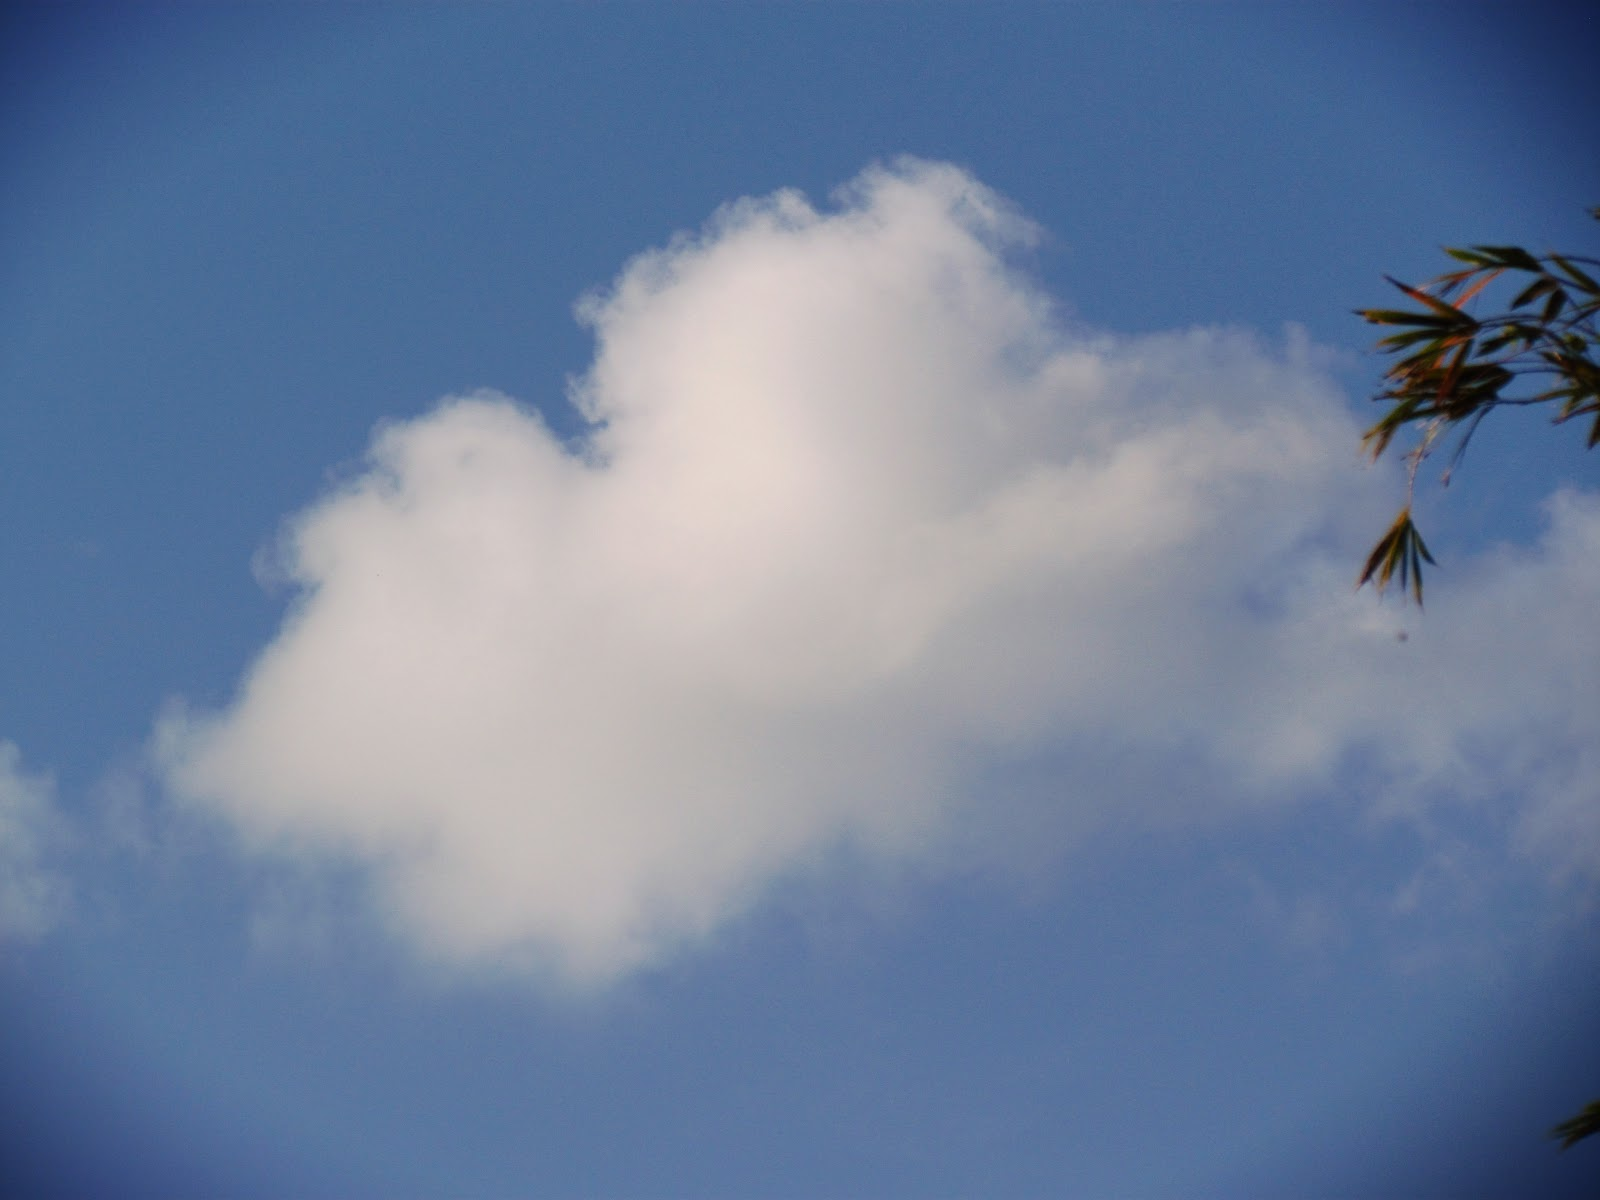 A nostalgic blue sky with white, fluffy clouds on a perfect afternoon in Florida with palm trees